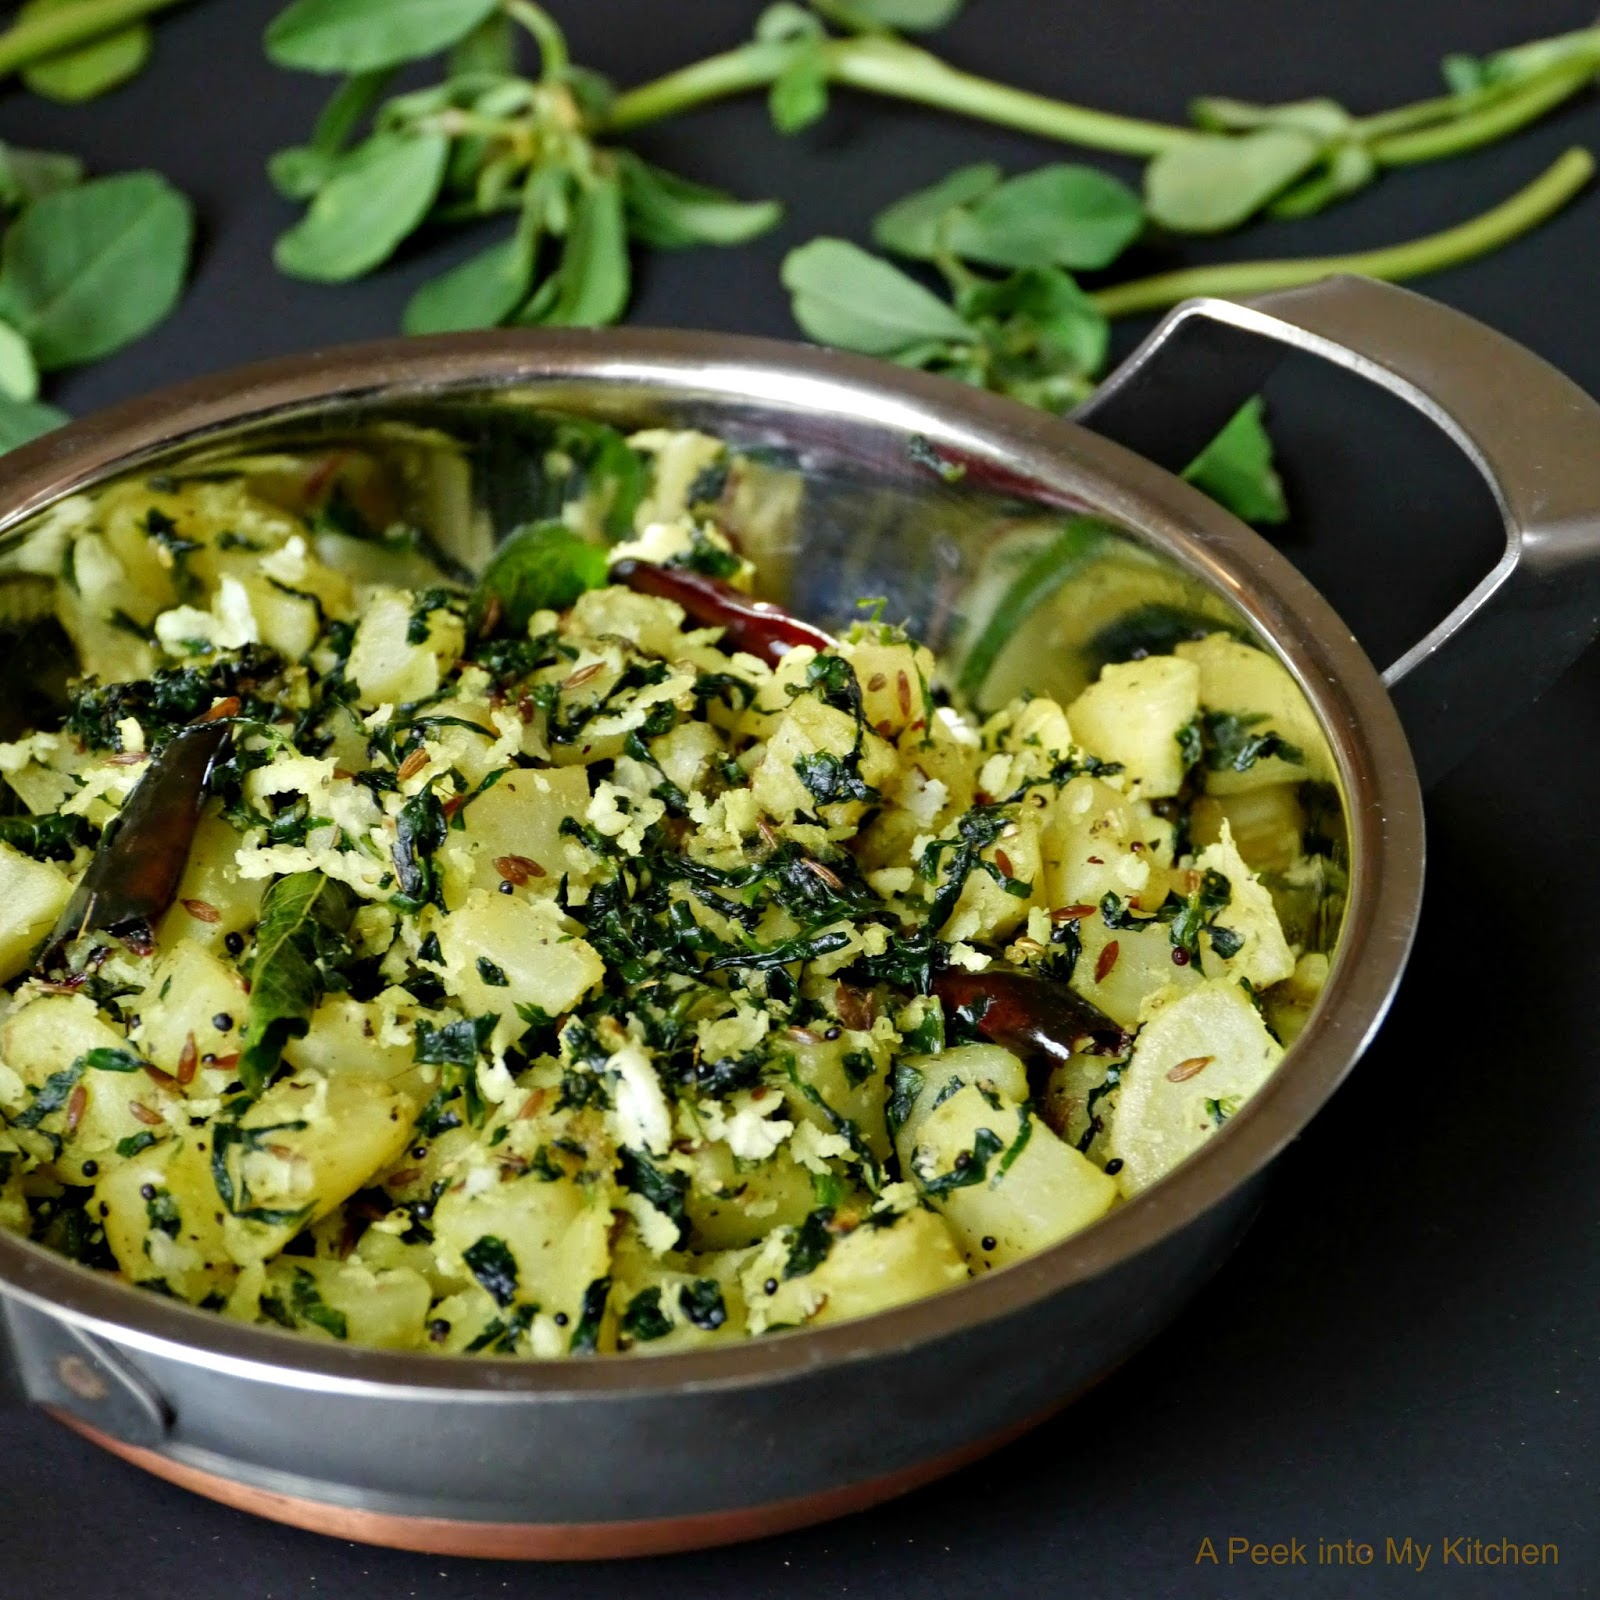 ... Kitchen: Sweet Potato and Fenugreek (Methi) Leaves Stir Fry ~ Day 21